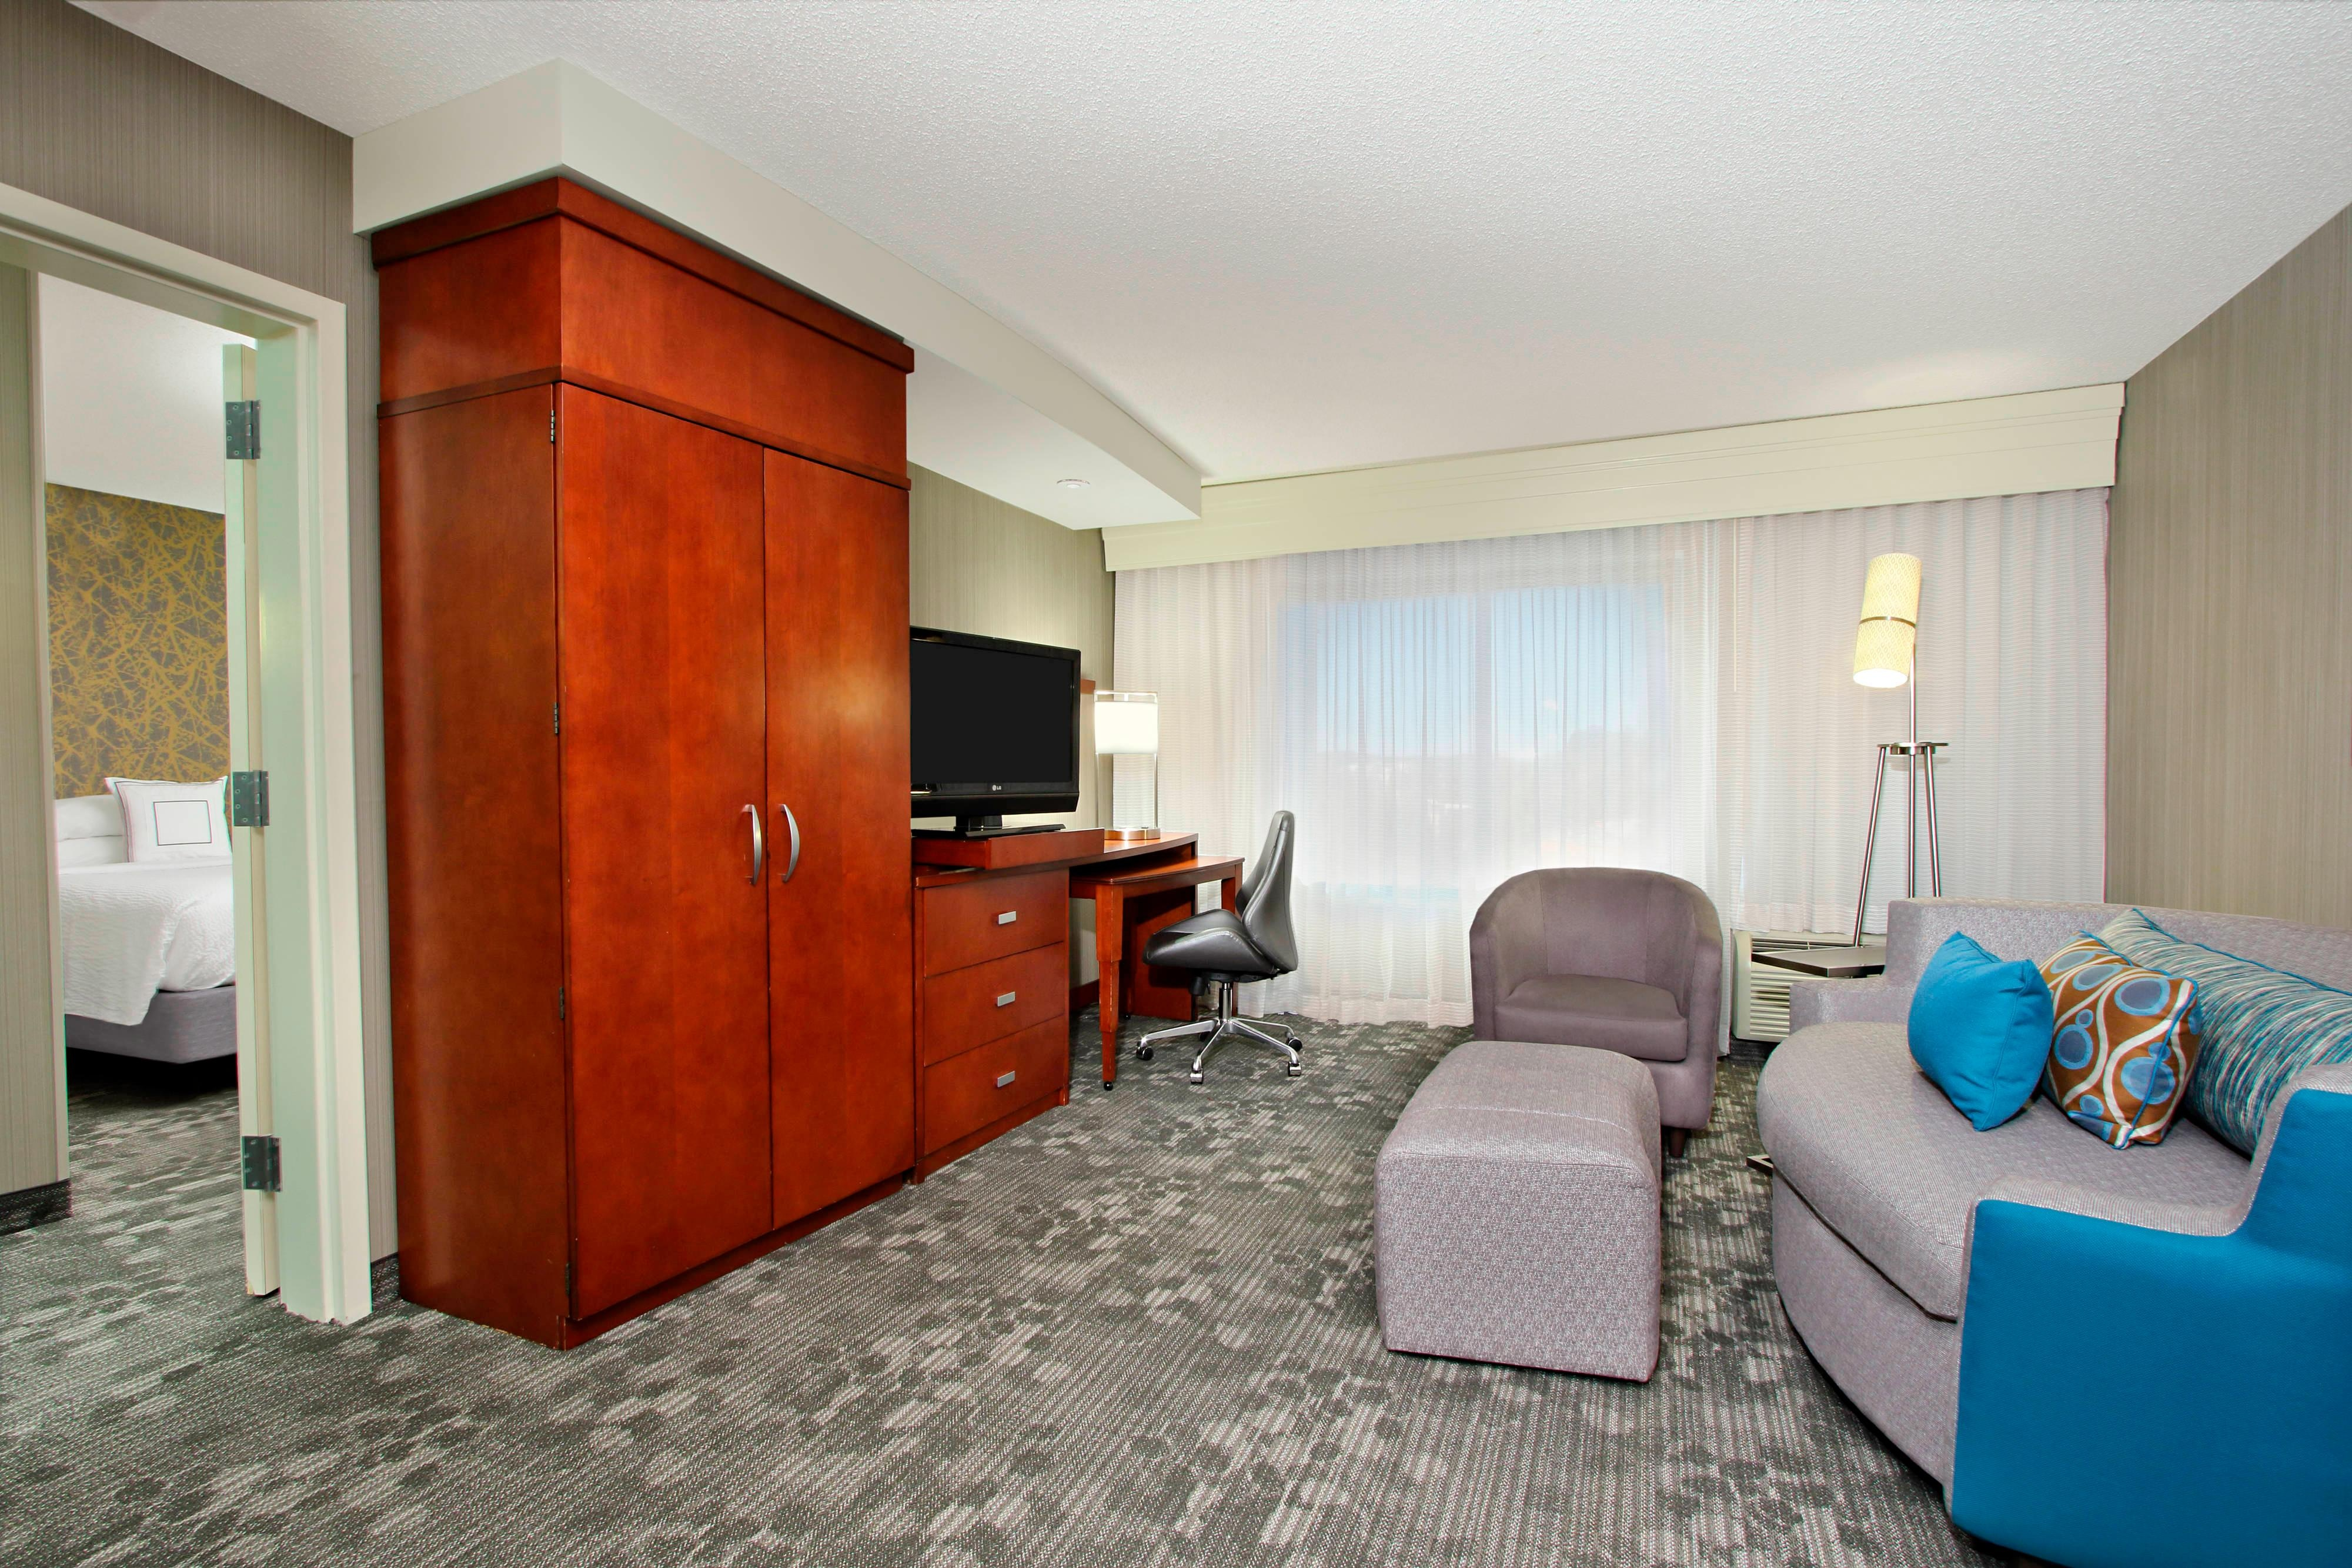 Extended Stay Hotel Rooms And Suites At The Atlanta Airport